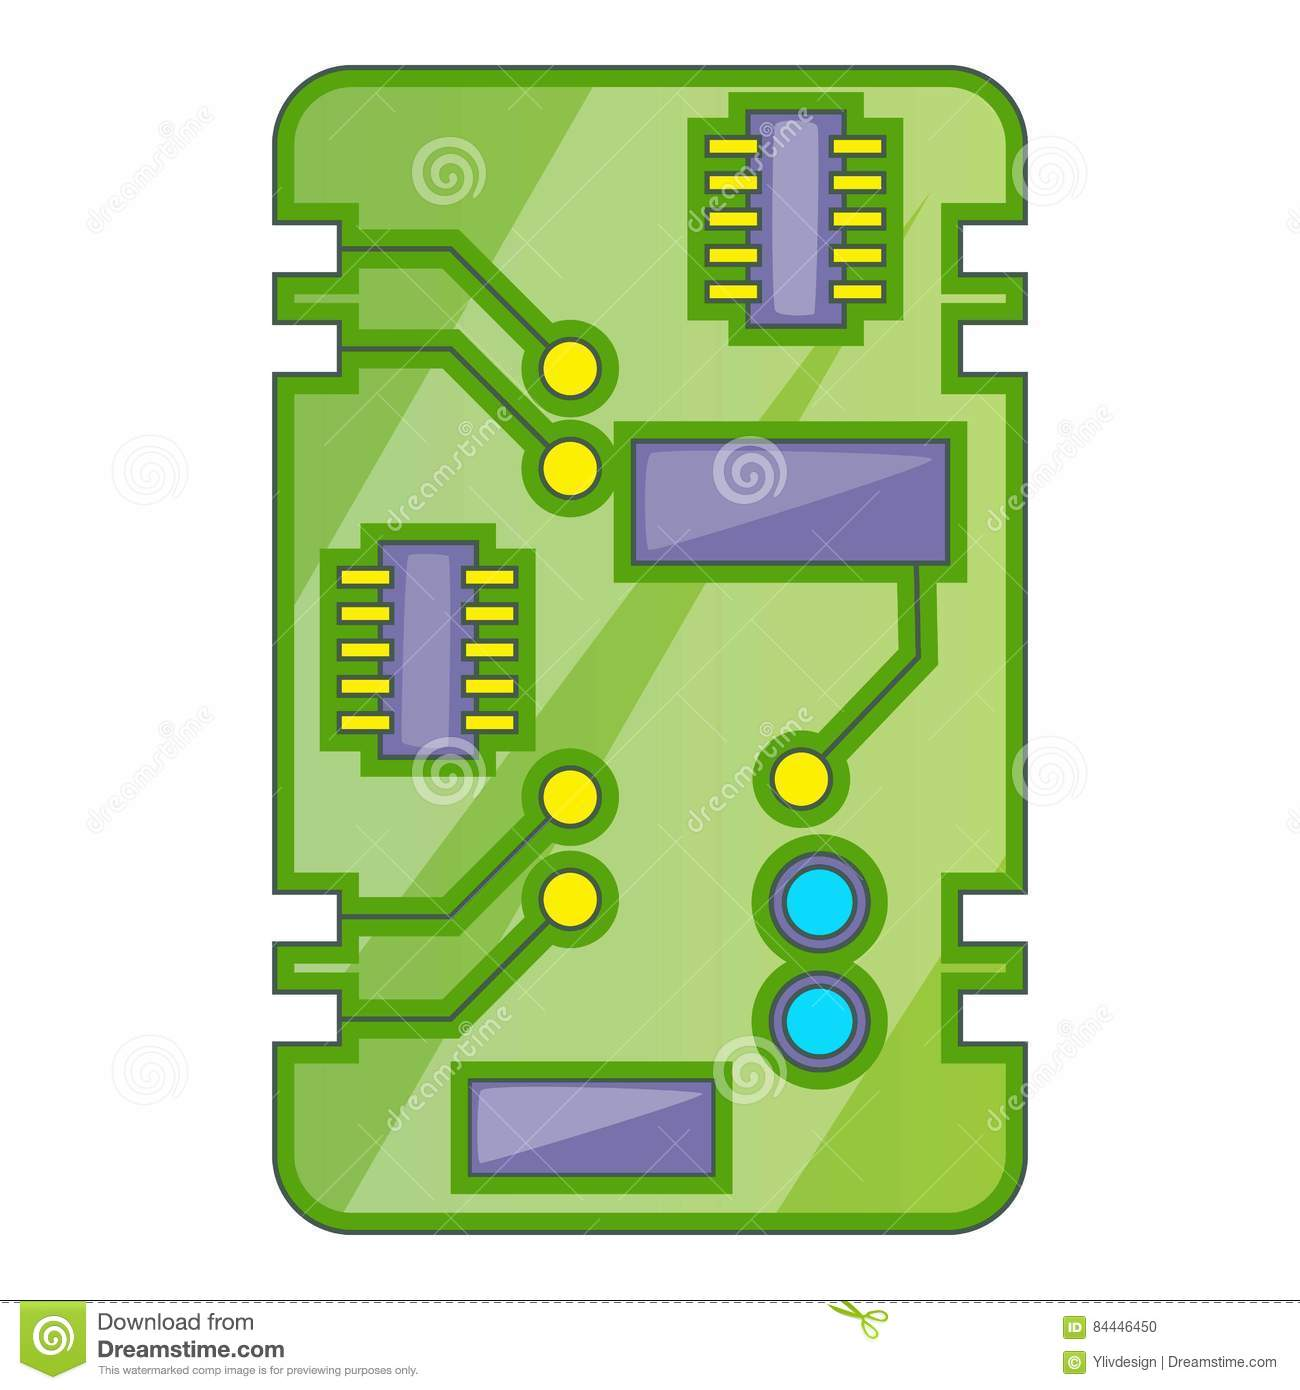 Cartoon Circuit Board Stock Illustrations 311 Different Types Of Boards Isolated On A White Background Phone Icon Illustration